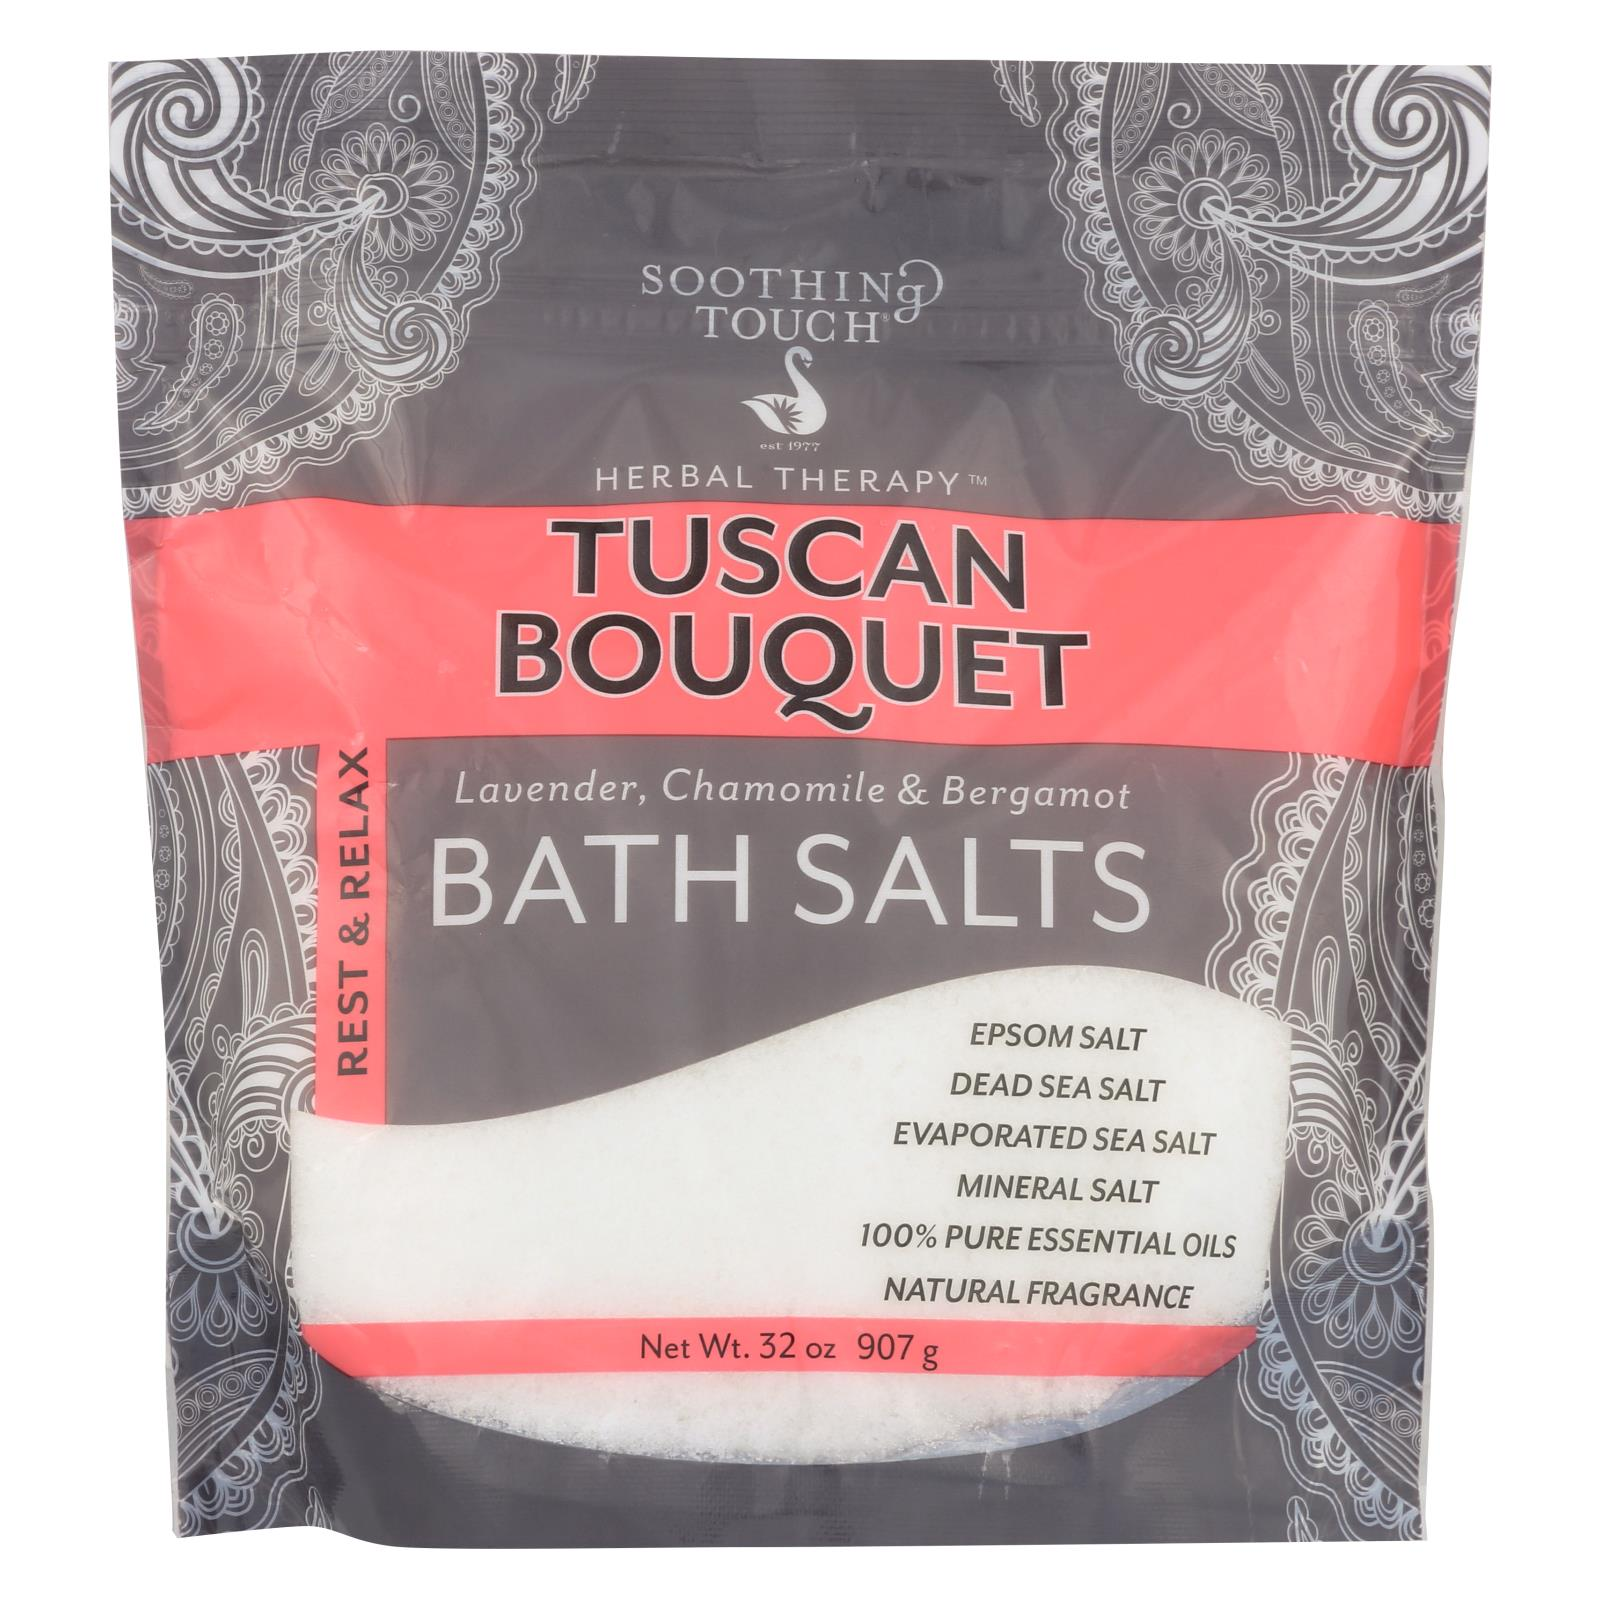 Buy Soothing Touch Bath Salts - Rest & Relax Tuscan Bouquet - 32 oz - Bubble Bath and Soaks from Veroeco.com